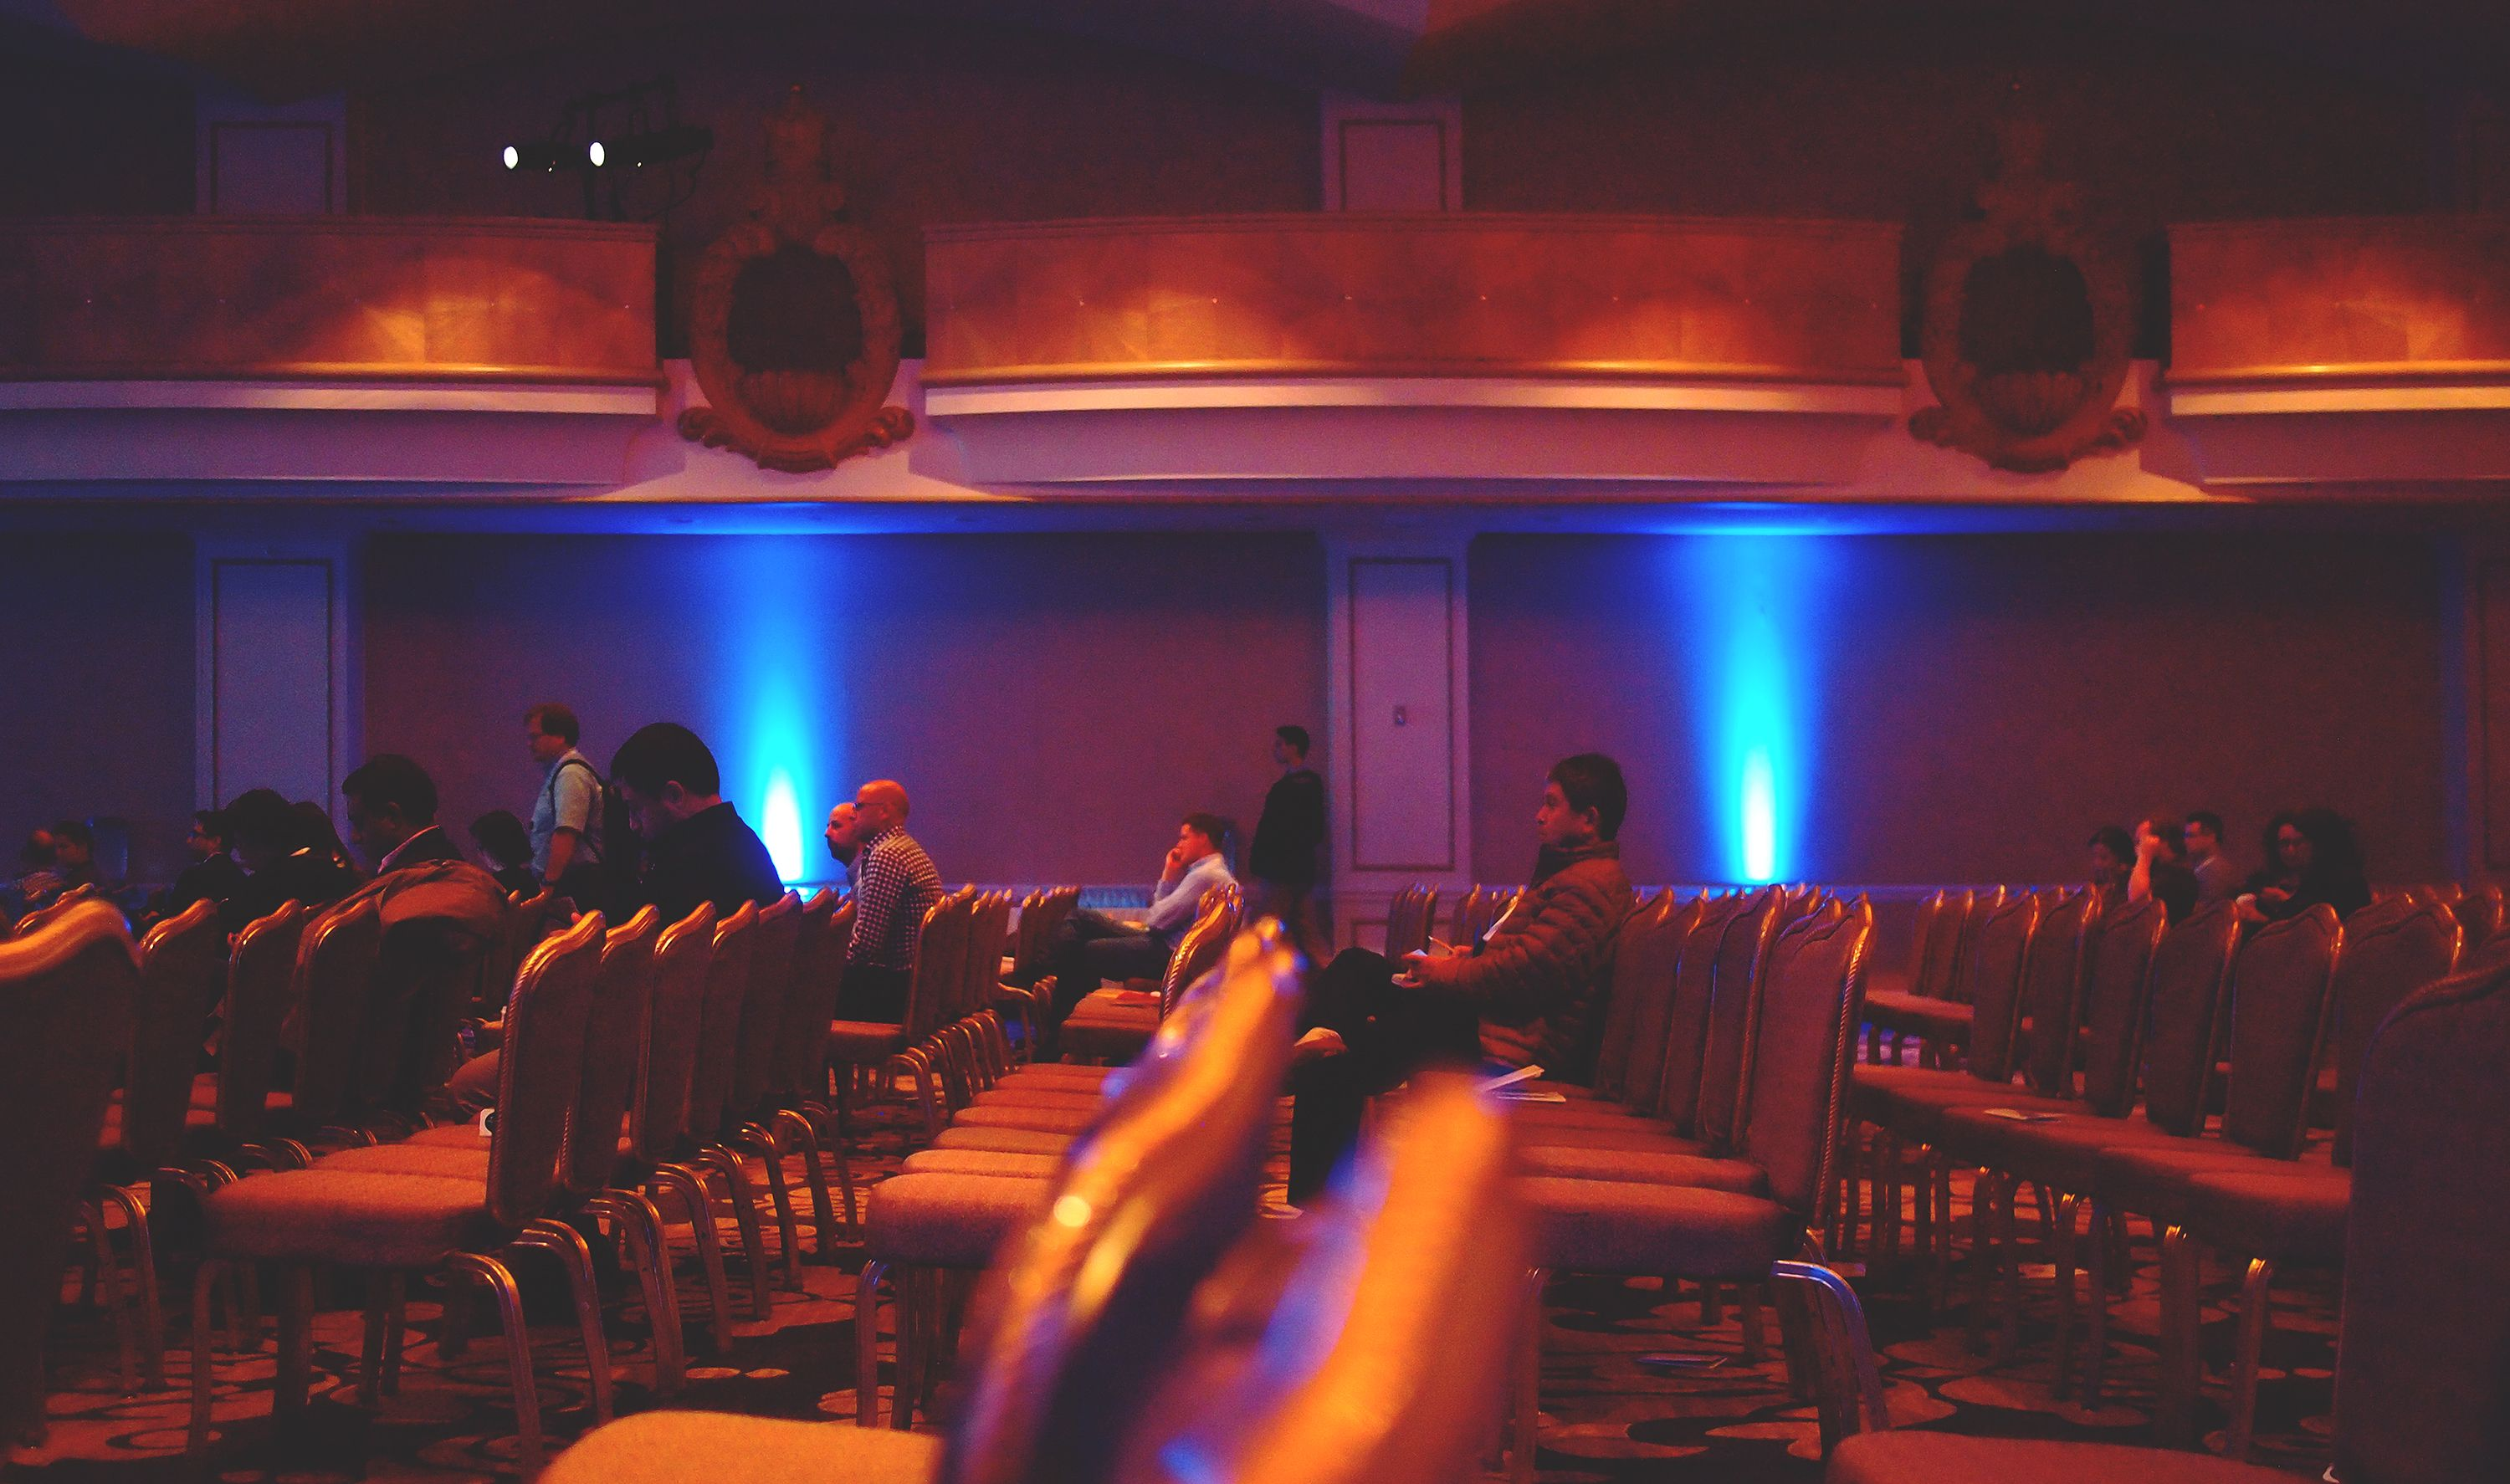 Top Insurance Tech Conferences to Attend (With images